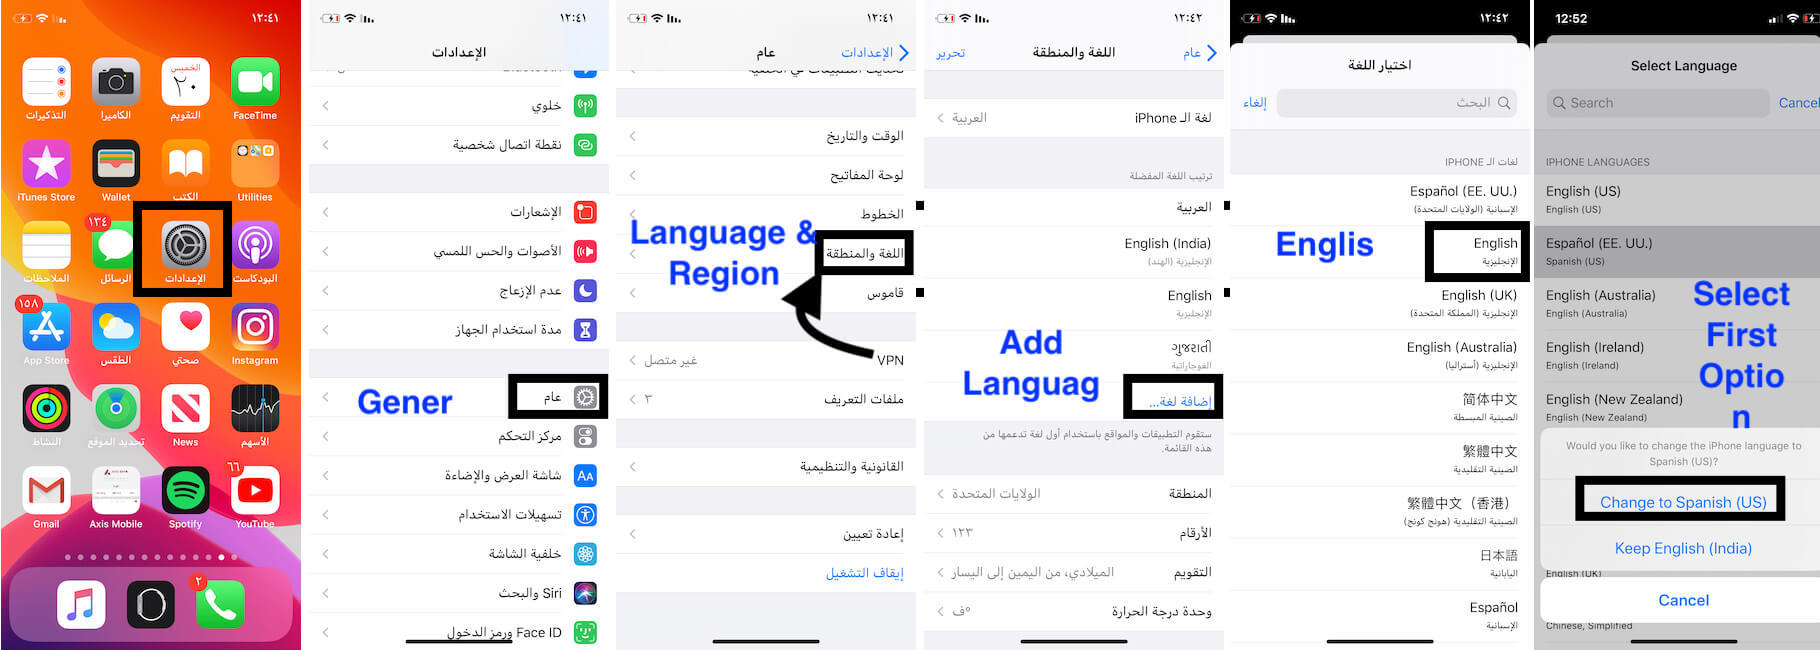 Arabic to English change language on iPhone